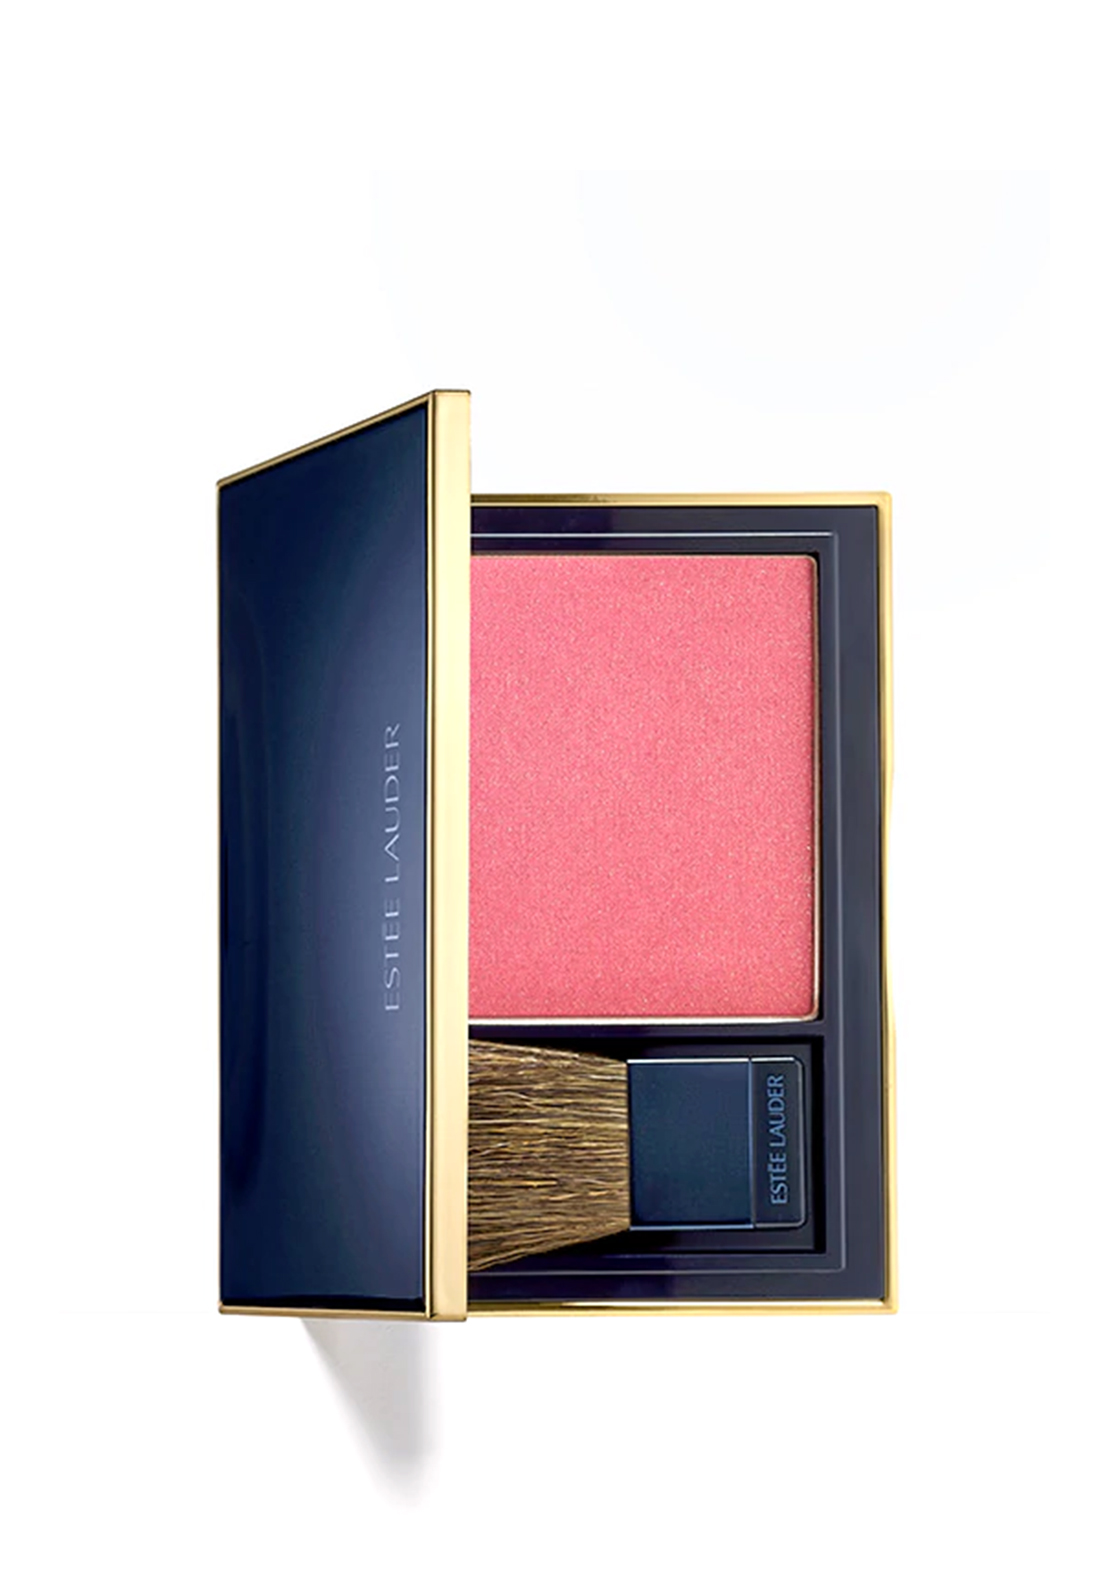 Estee Lauder Pure Colour Envy Shimmering BlushLights, Pink Ingenue